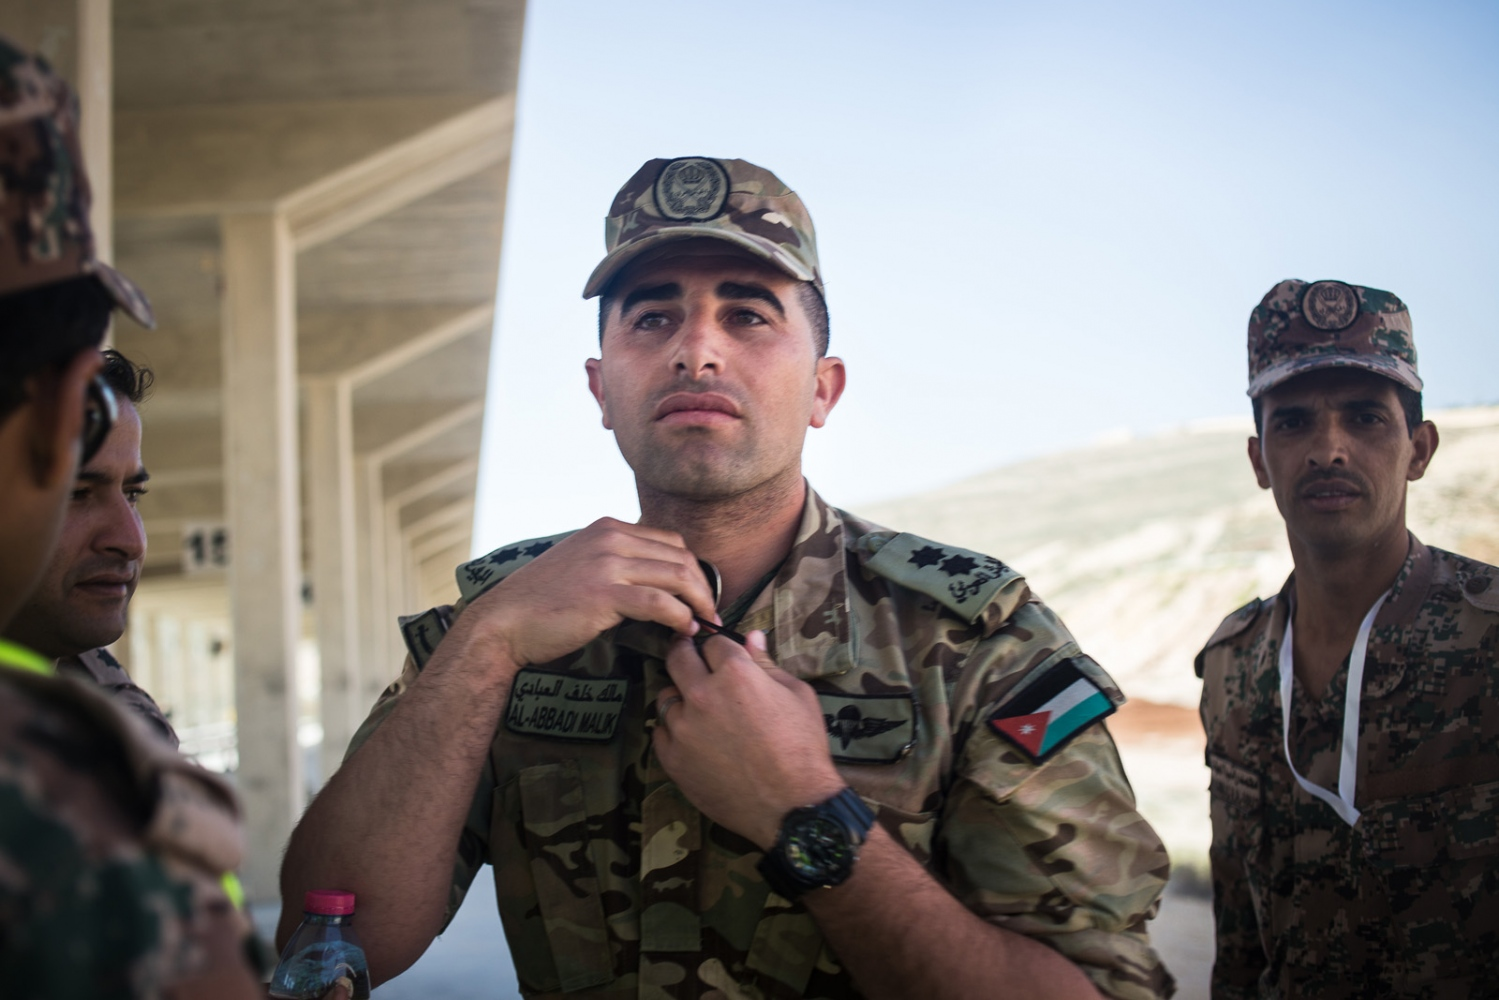 Commander Malik Al-Abbadi, leader of the Jordanian team, is photographed during the desert stress shoot at the seventh annual Warrior Competition at the King Abdullah II Special Operations Training Center near Amman, Jordan, on April 21, 2015.